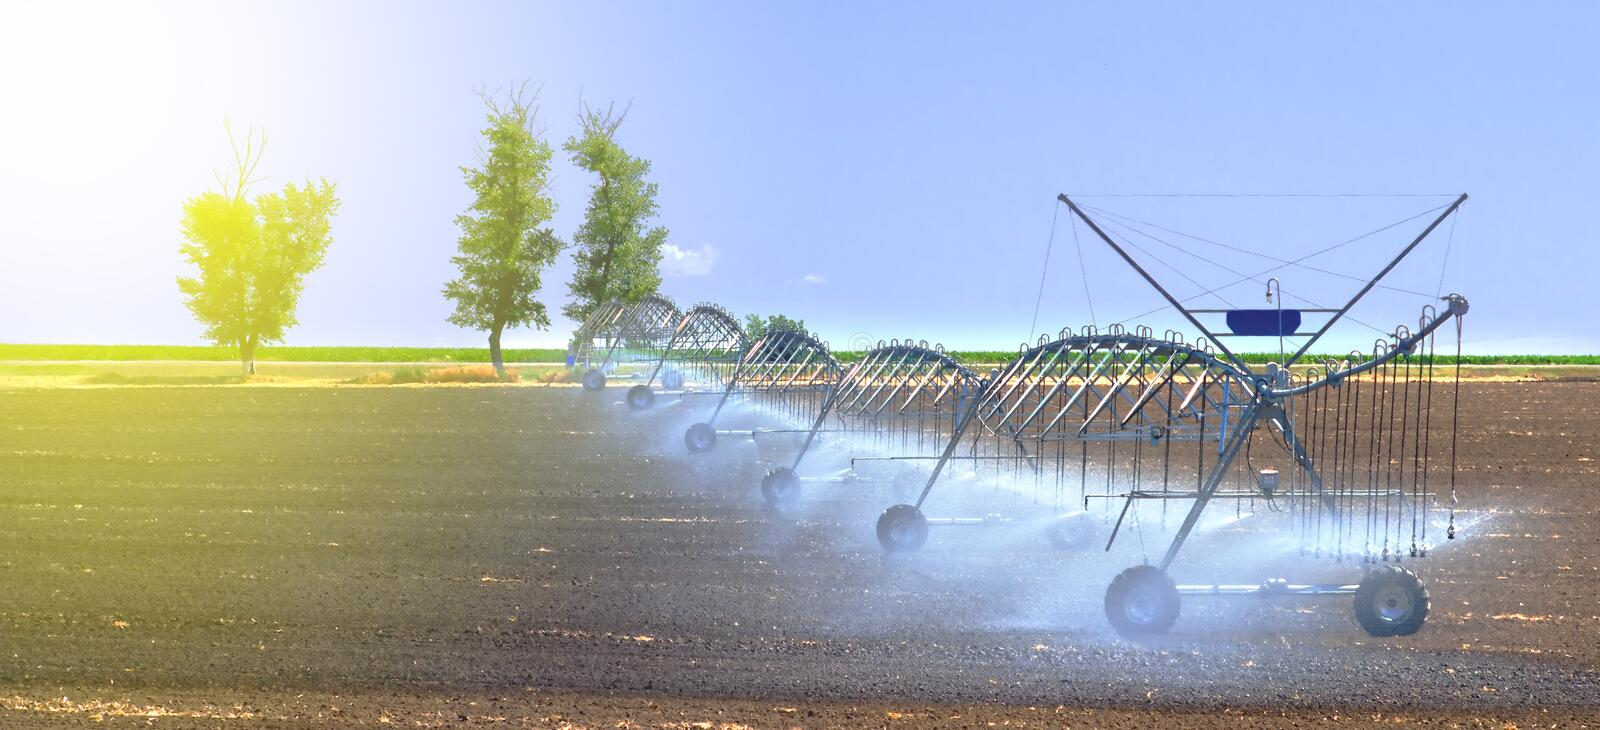 Field irrigation system for better plant growth and further cultivation and growing of agricultural crops royalty free stock photos